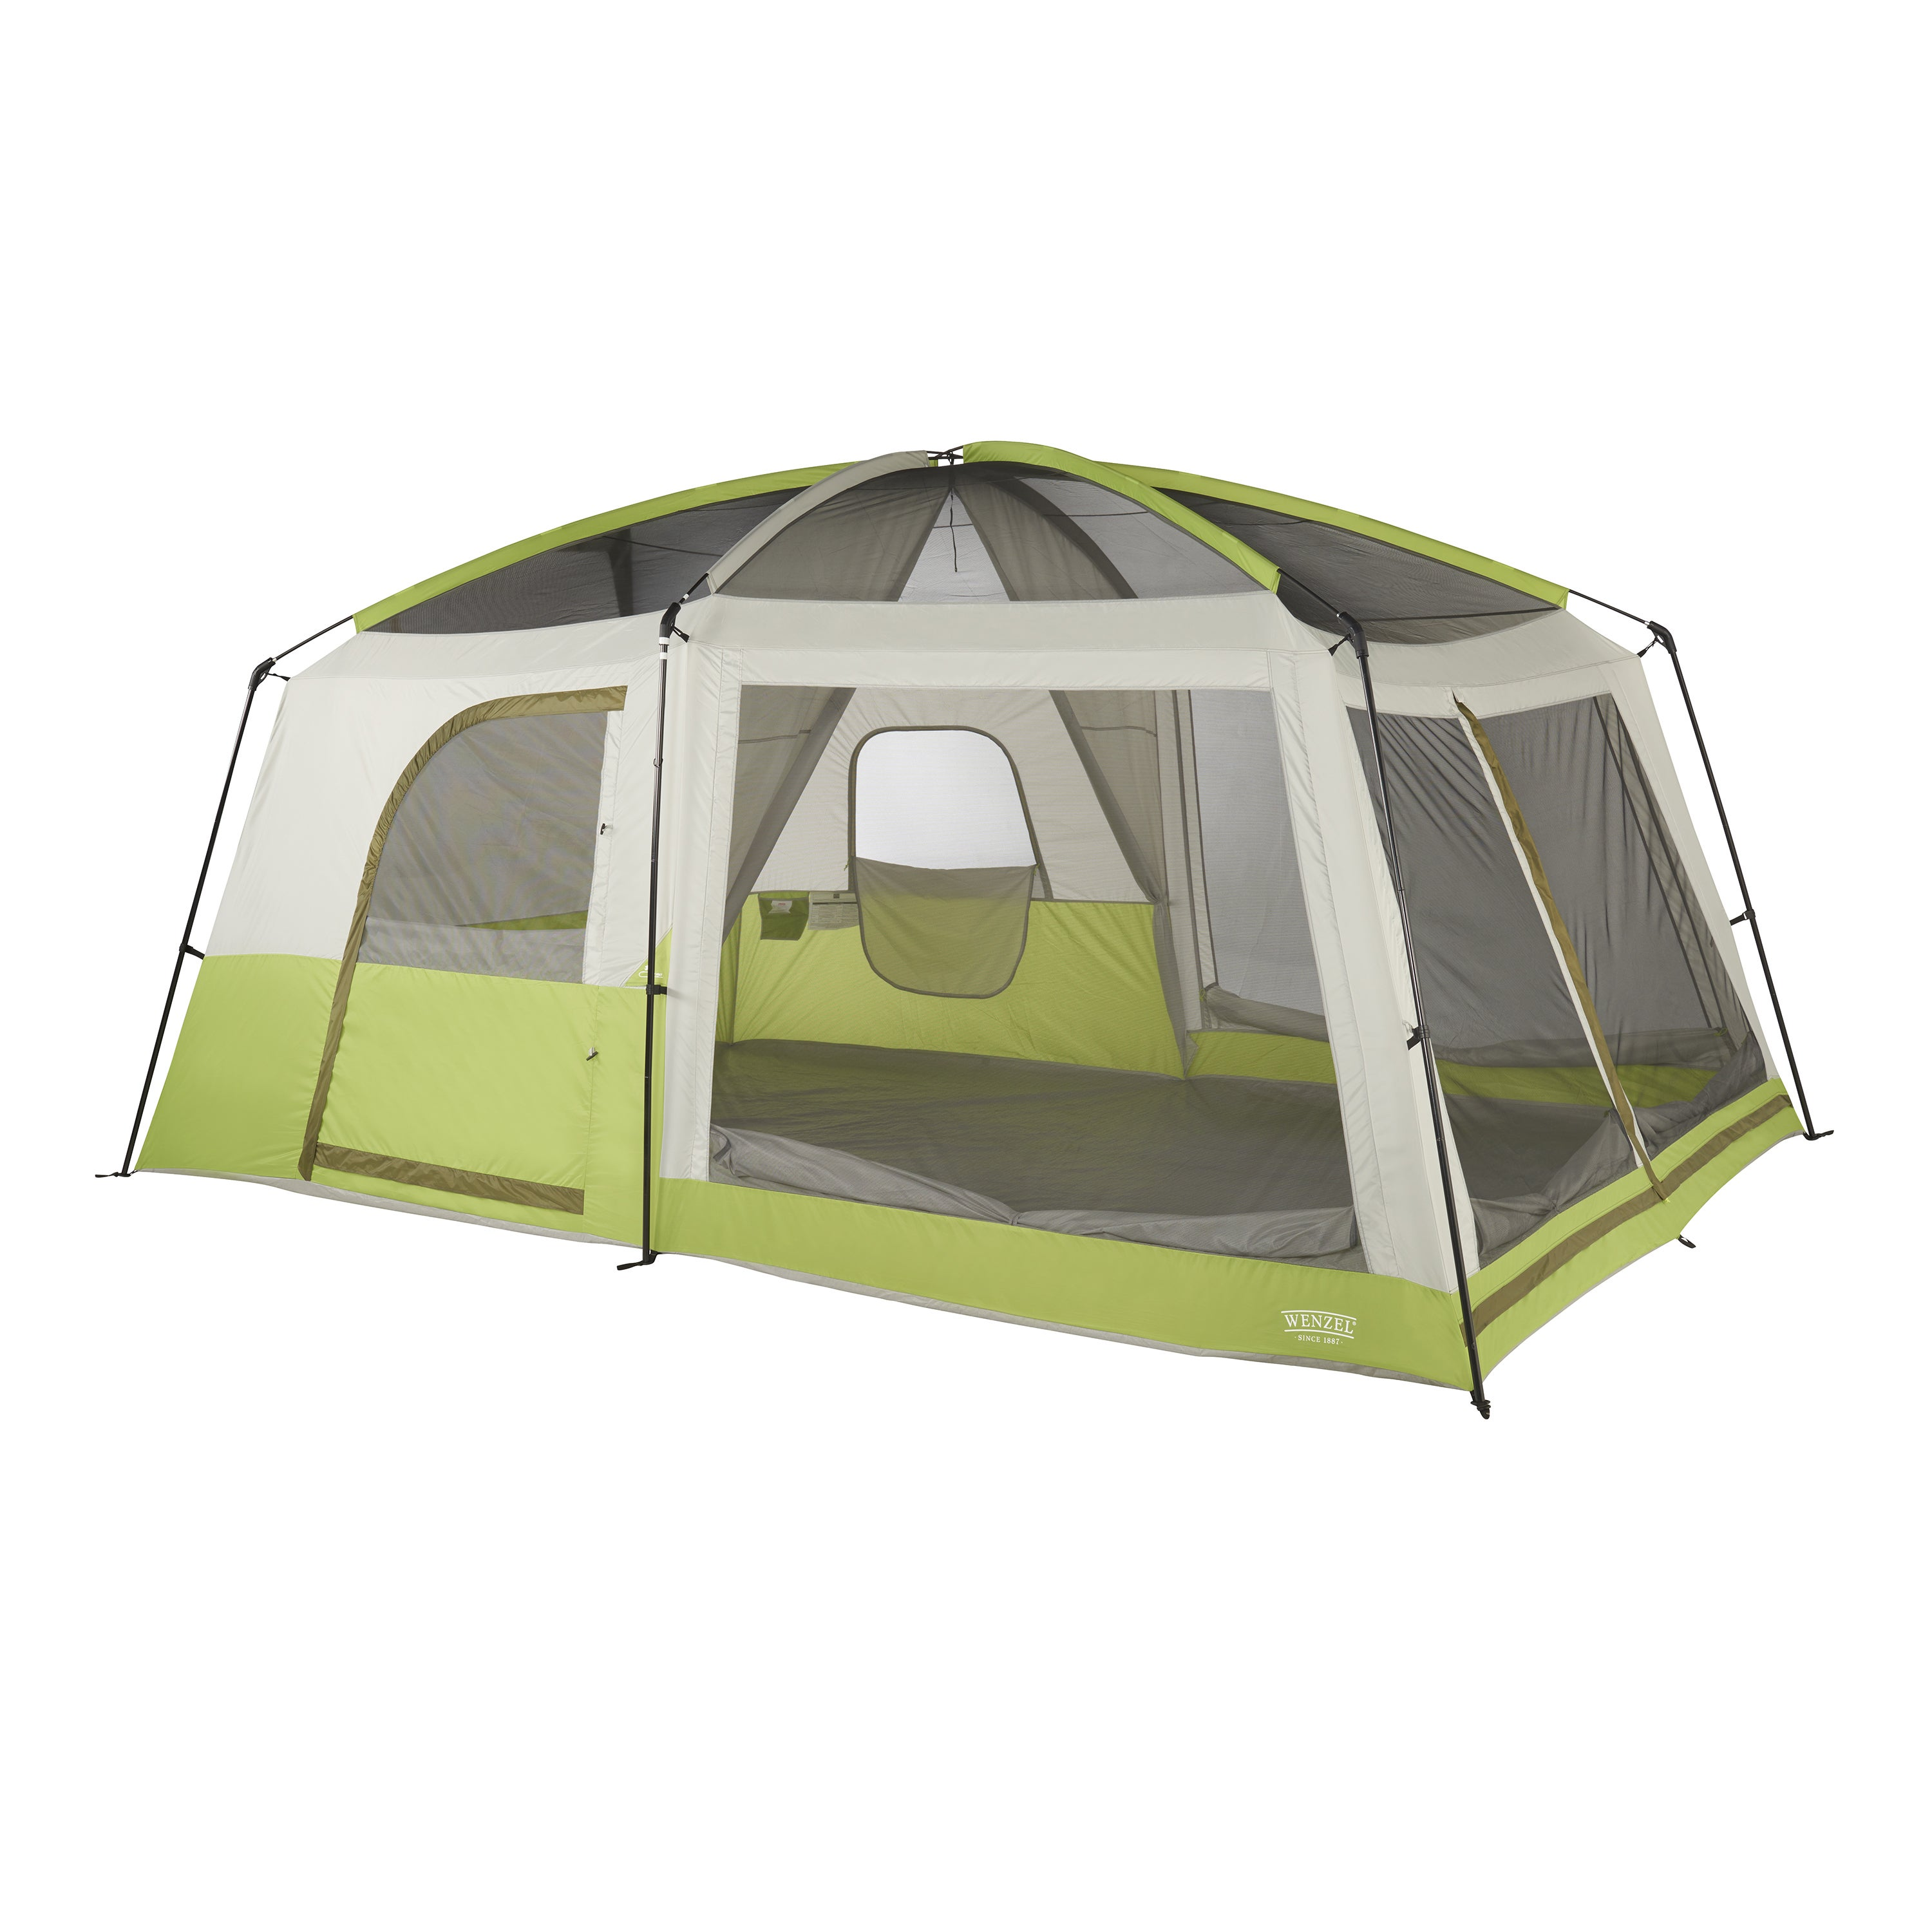 Wenzel Eldorado Green 10-person Cabin Tent - Free Shipping Today - Overstock.com - 21528778  sc 1 st  Overstock.com & Wenzel Eldorado Green 10-person Cabin Tent - Free Shipping Today ...